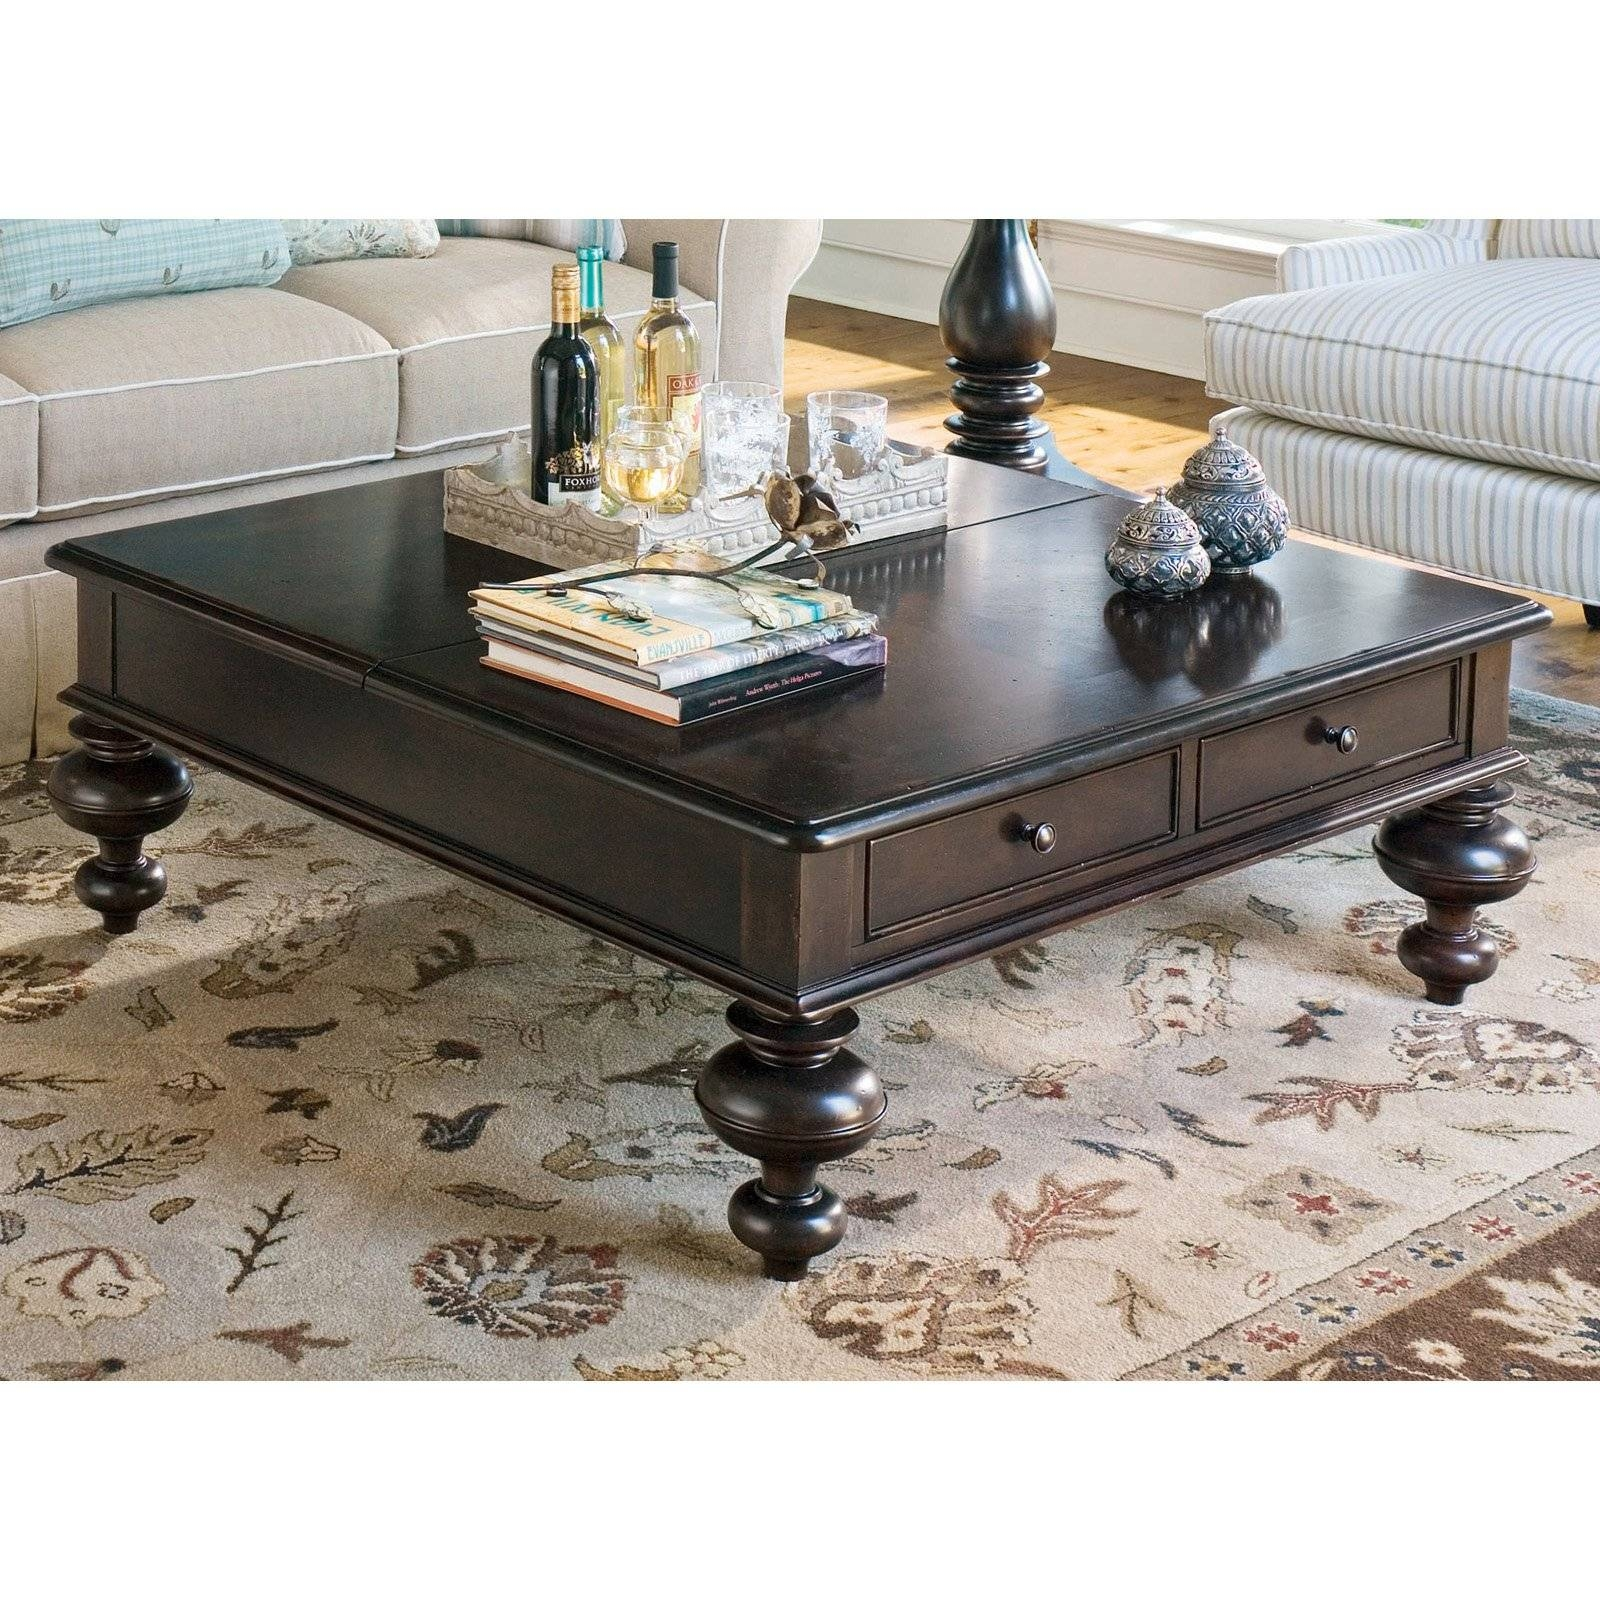 Displaying Gallery Of Large Low Rustic Coffee Tables View